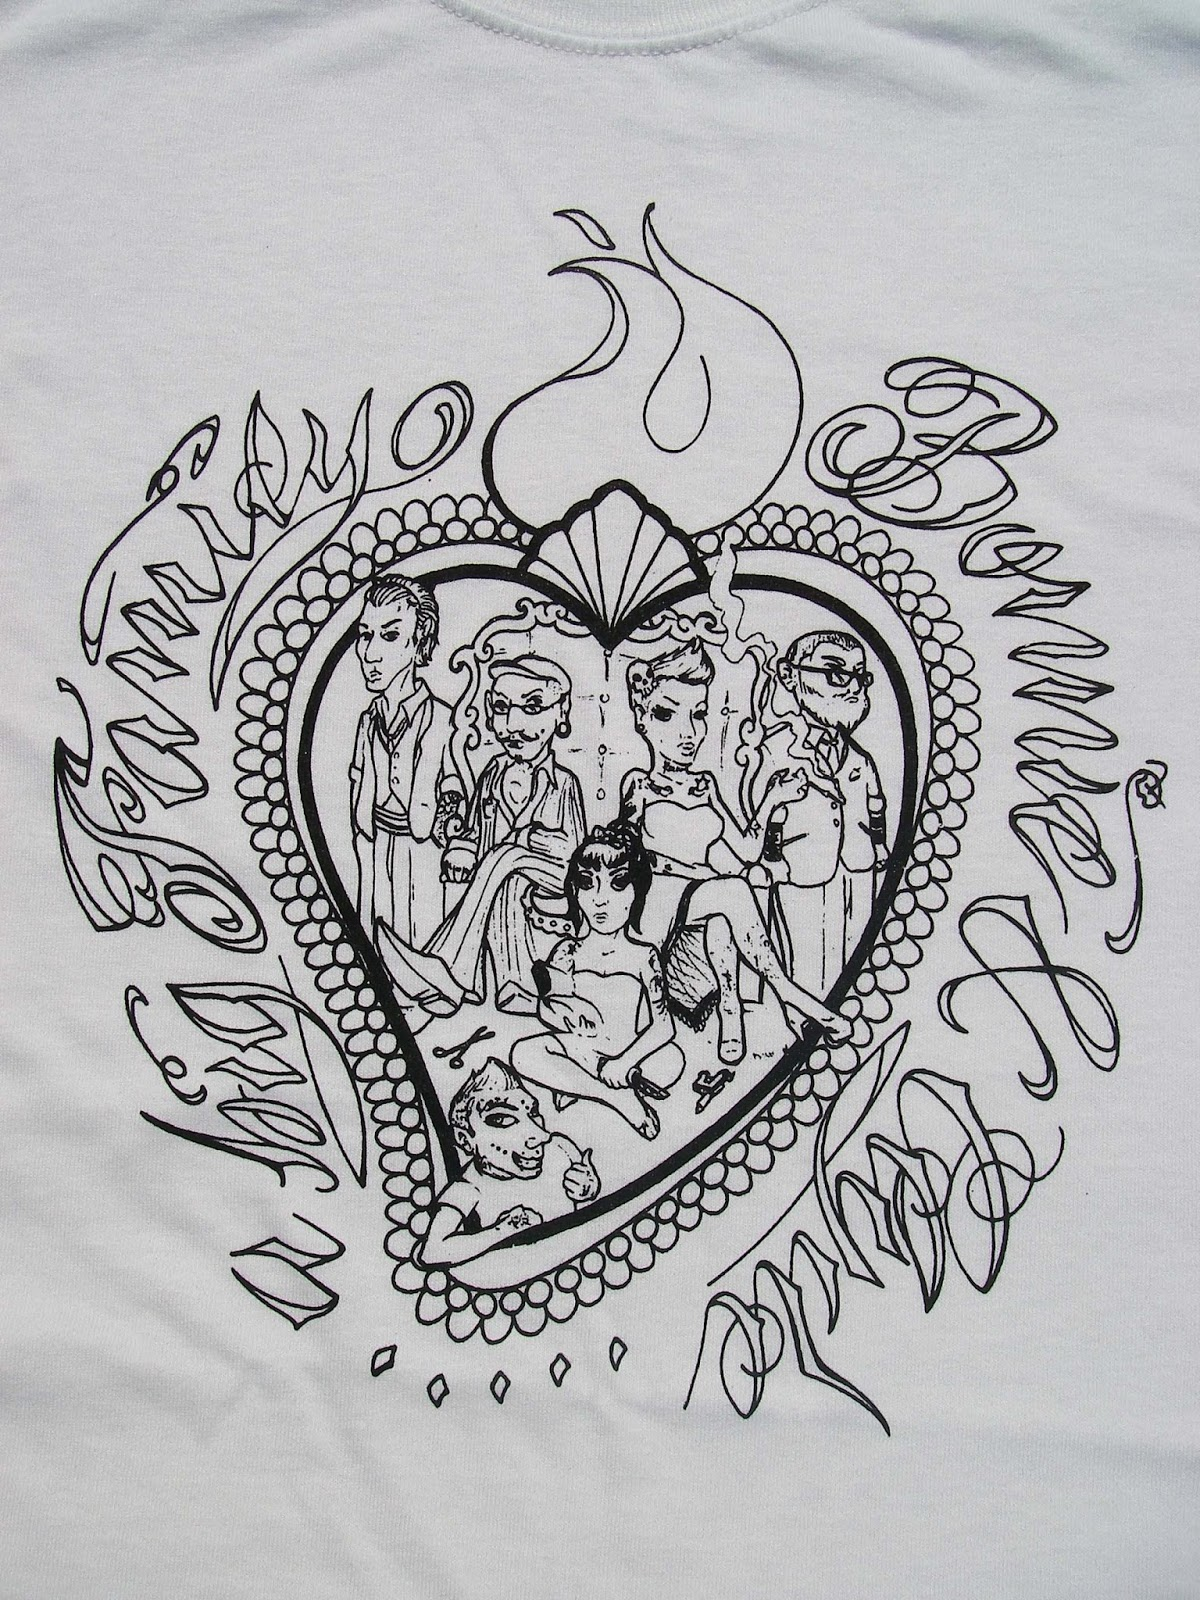 Bonnie And Clyde Tattoo: Create Your Own Sleeve Tattoo Online Free, Bonnie And